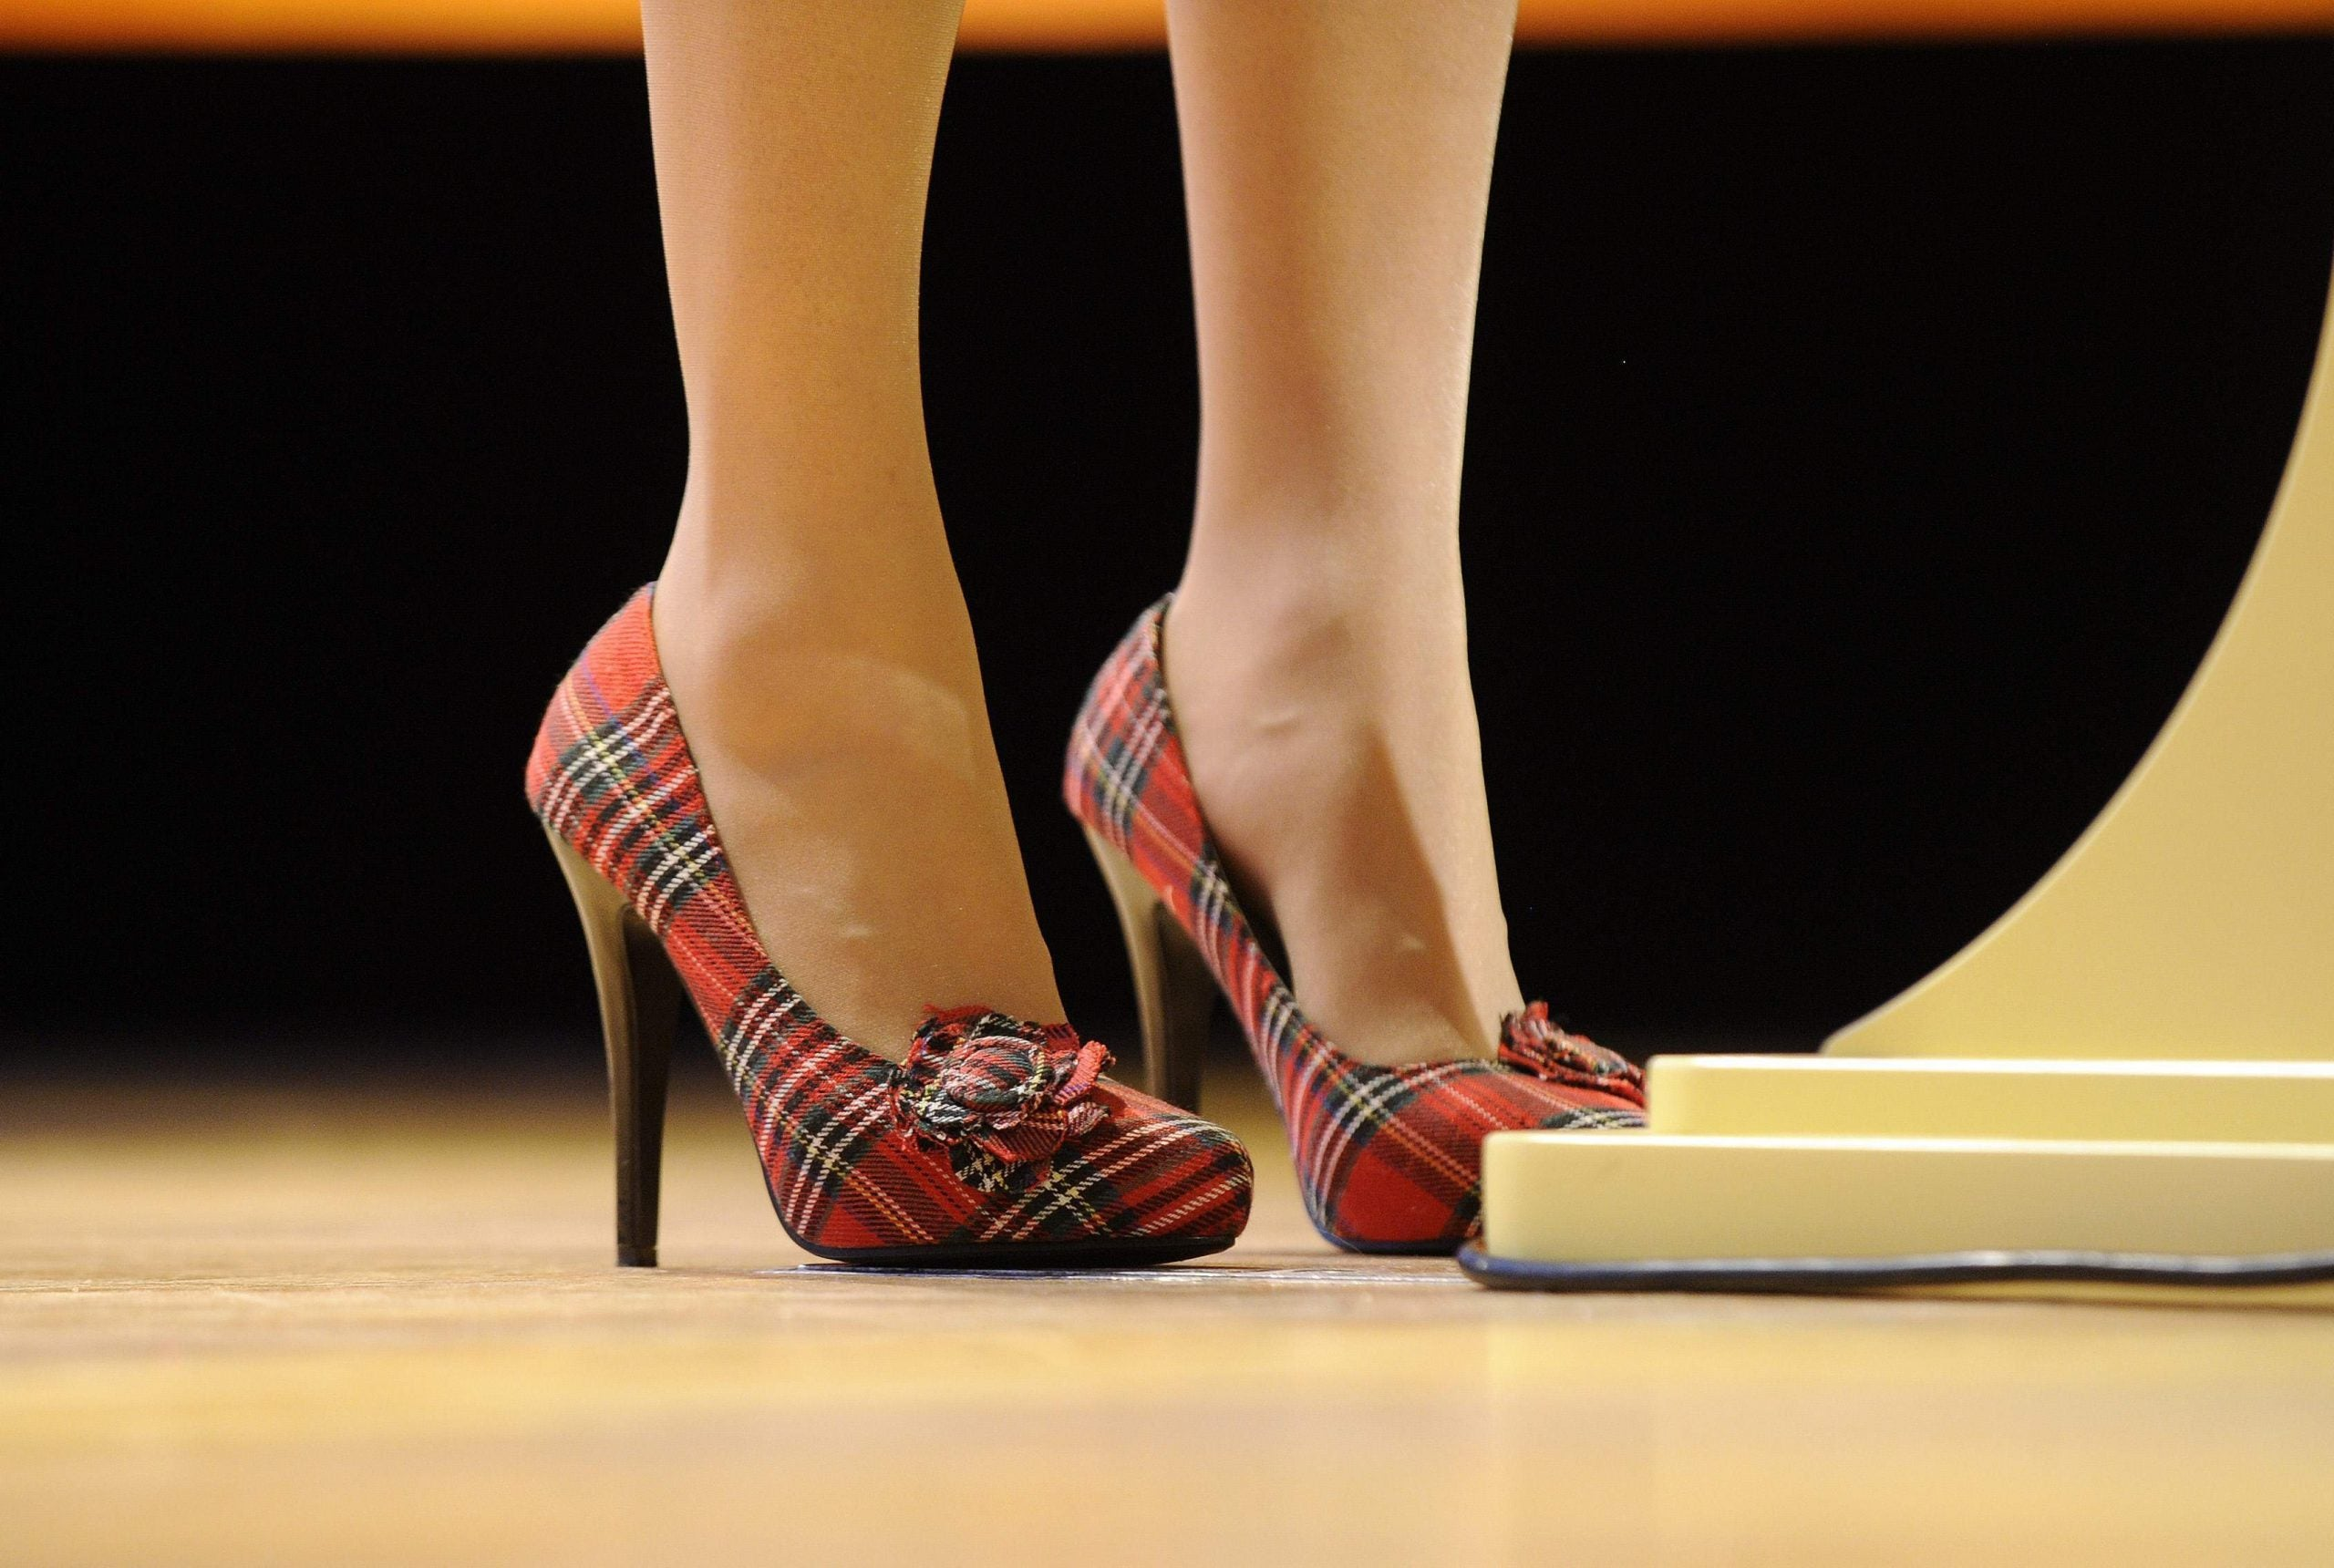 Sturgeon's heels do the talking: fashion and feminist politics need not be mutually exclusive